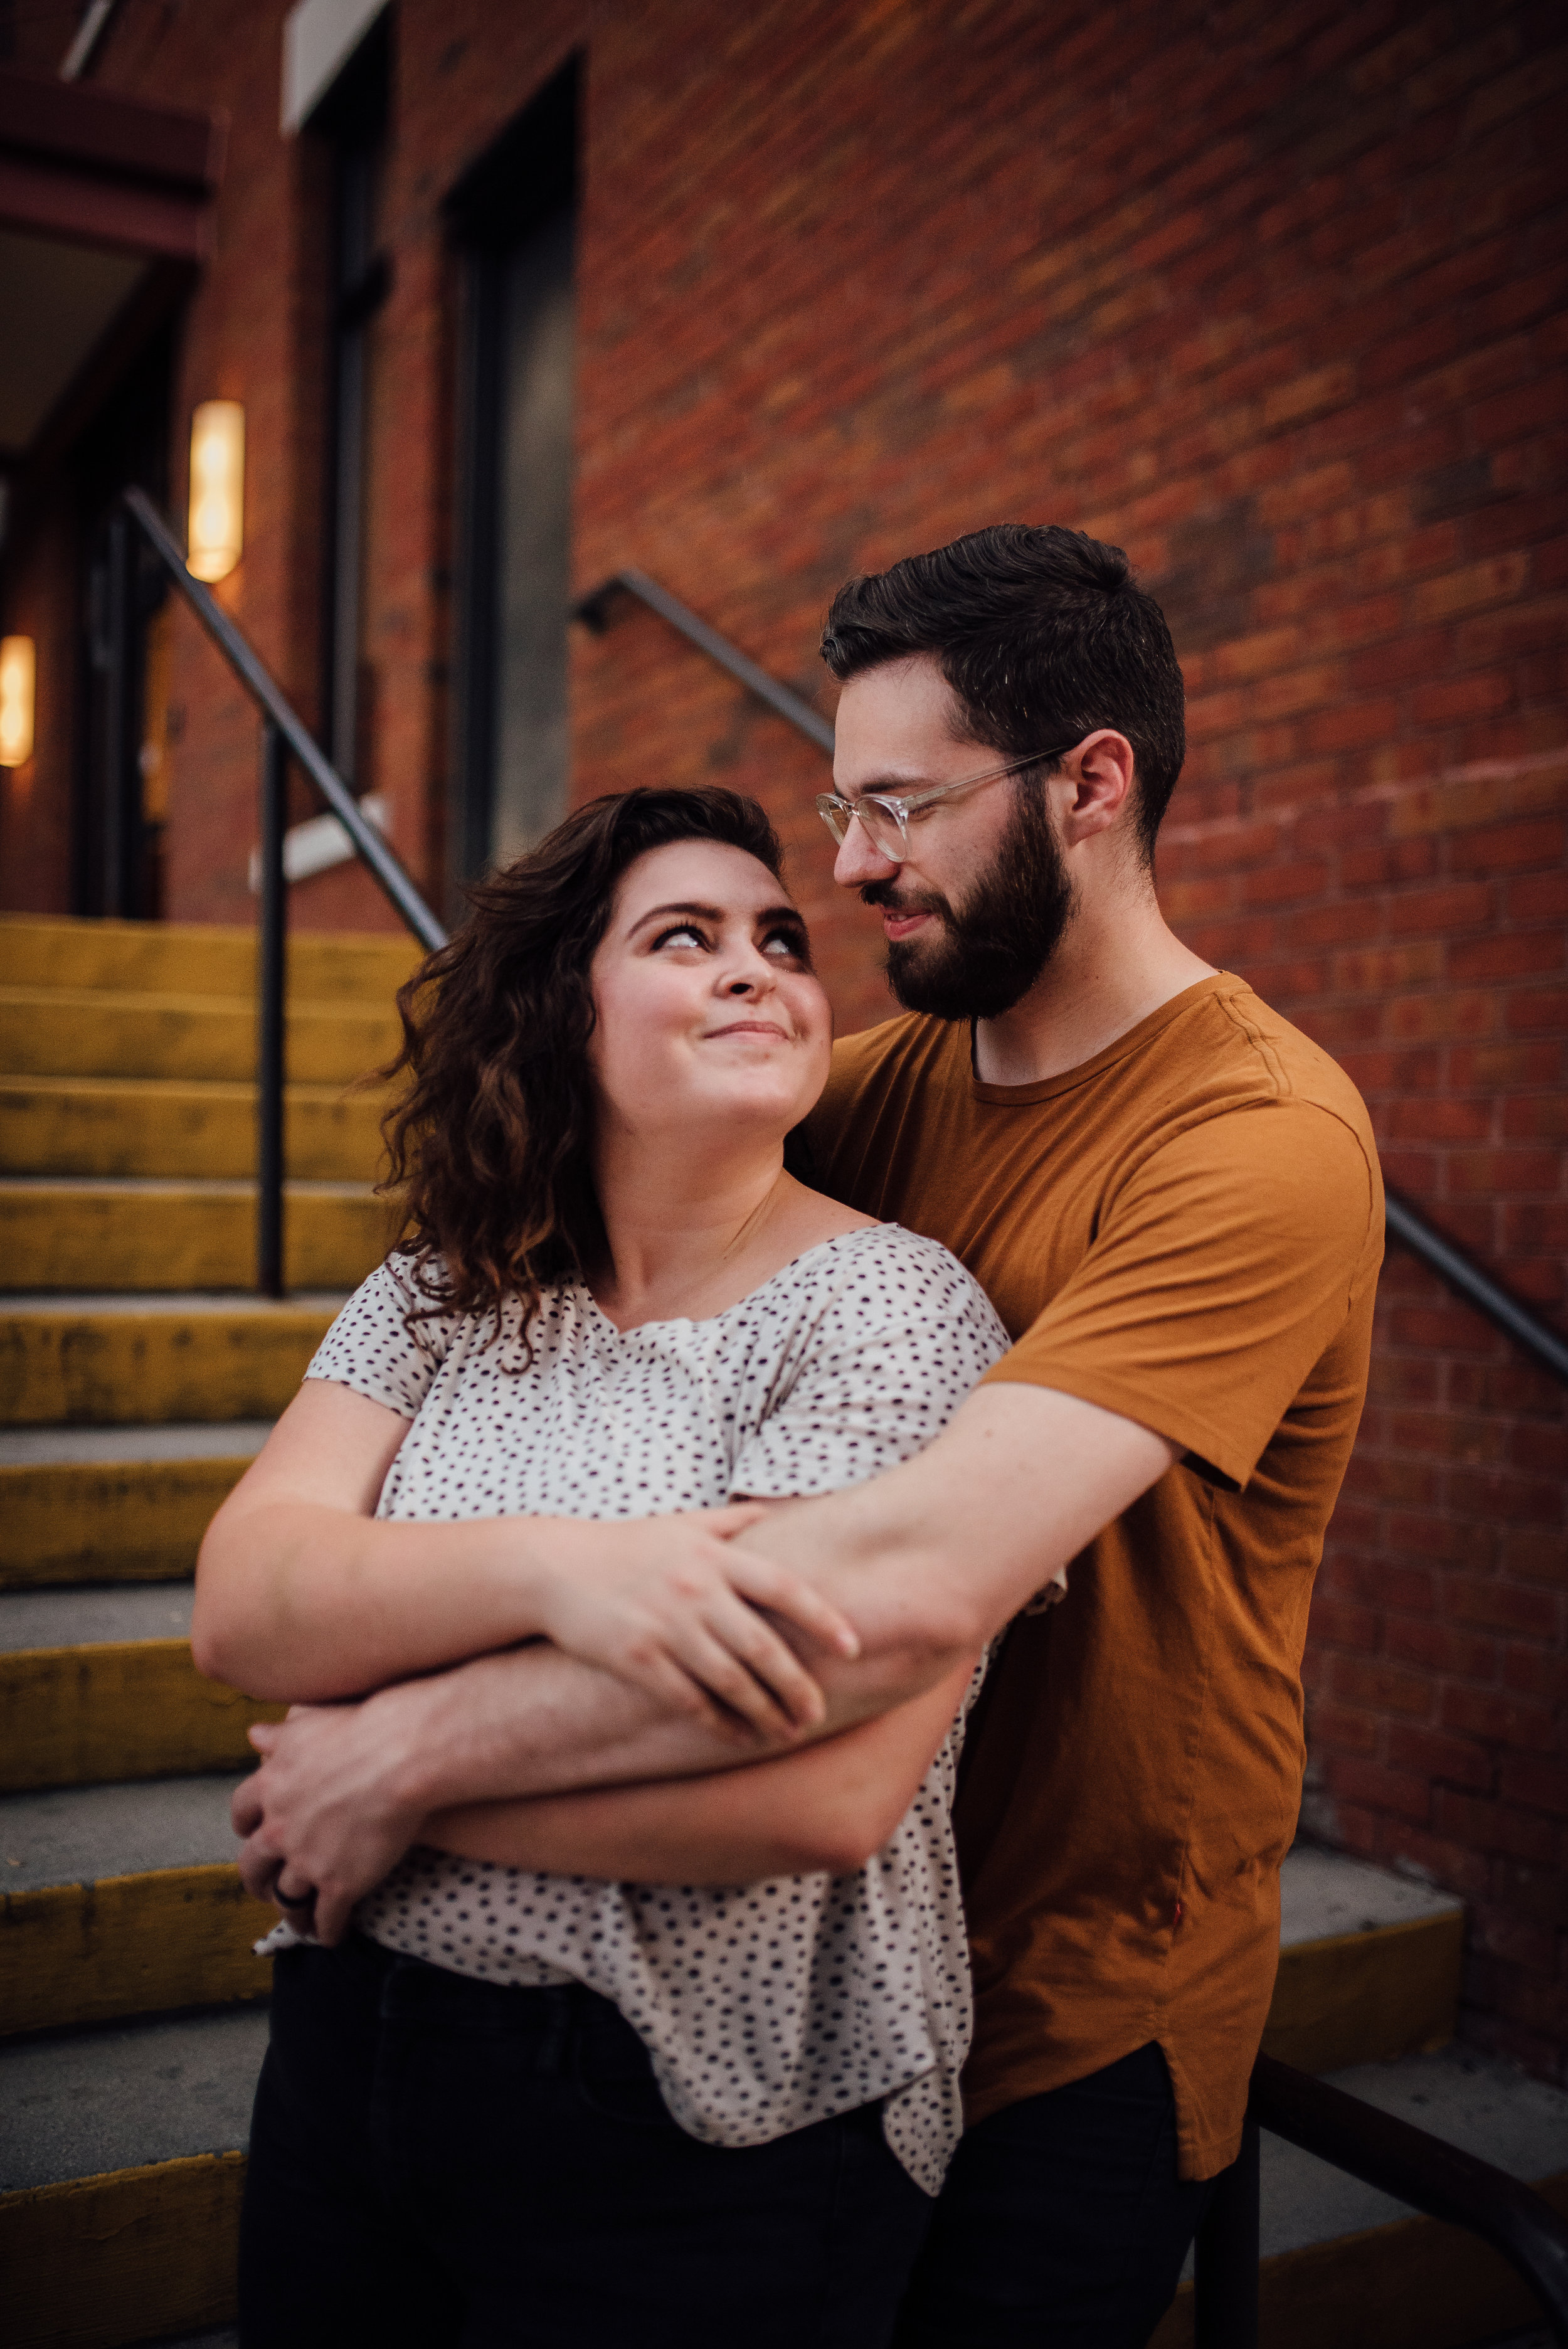 raleigh couple session - raleigh engagement session - north carolina engagement photographer - north carolina wedding photographer - raleigh wedding photographer